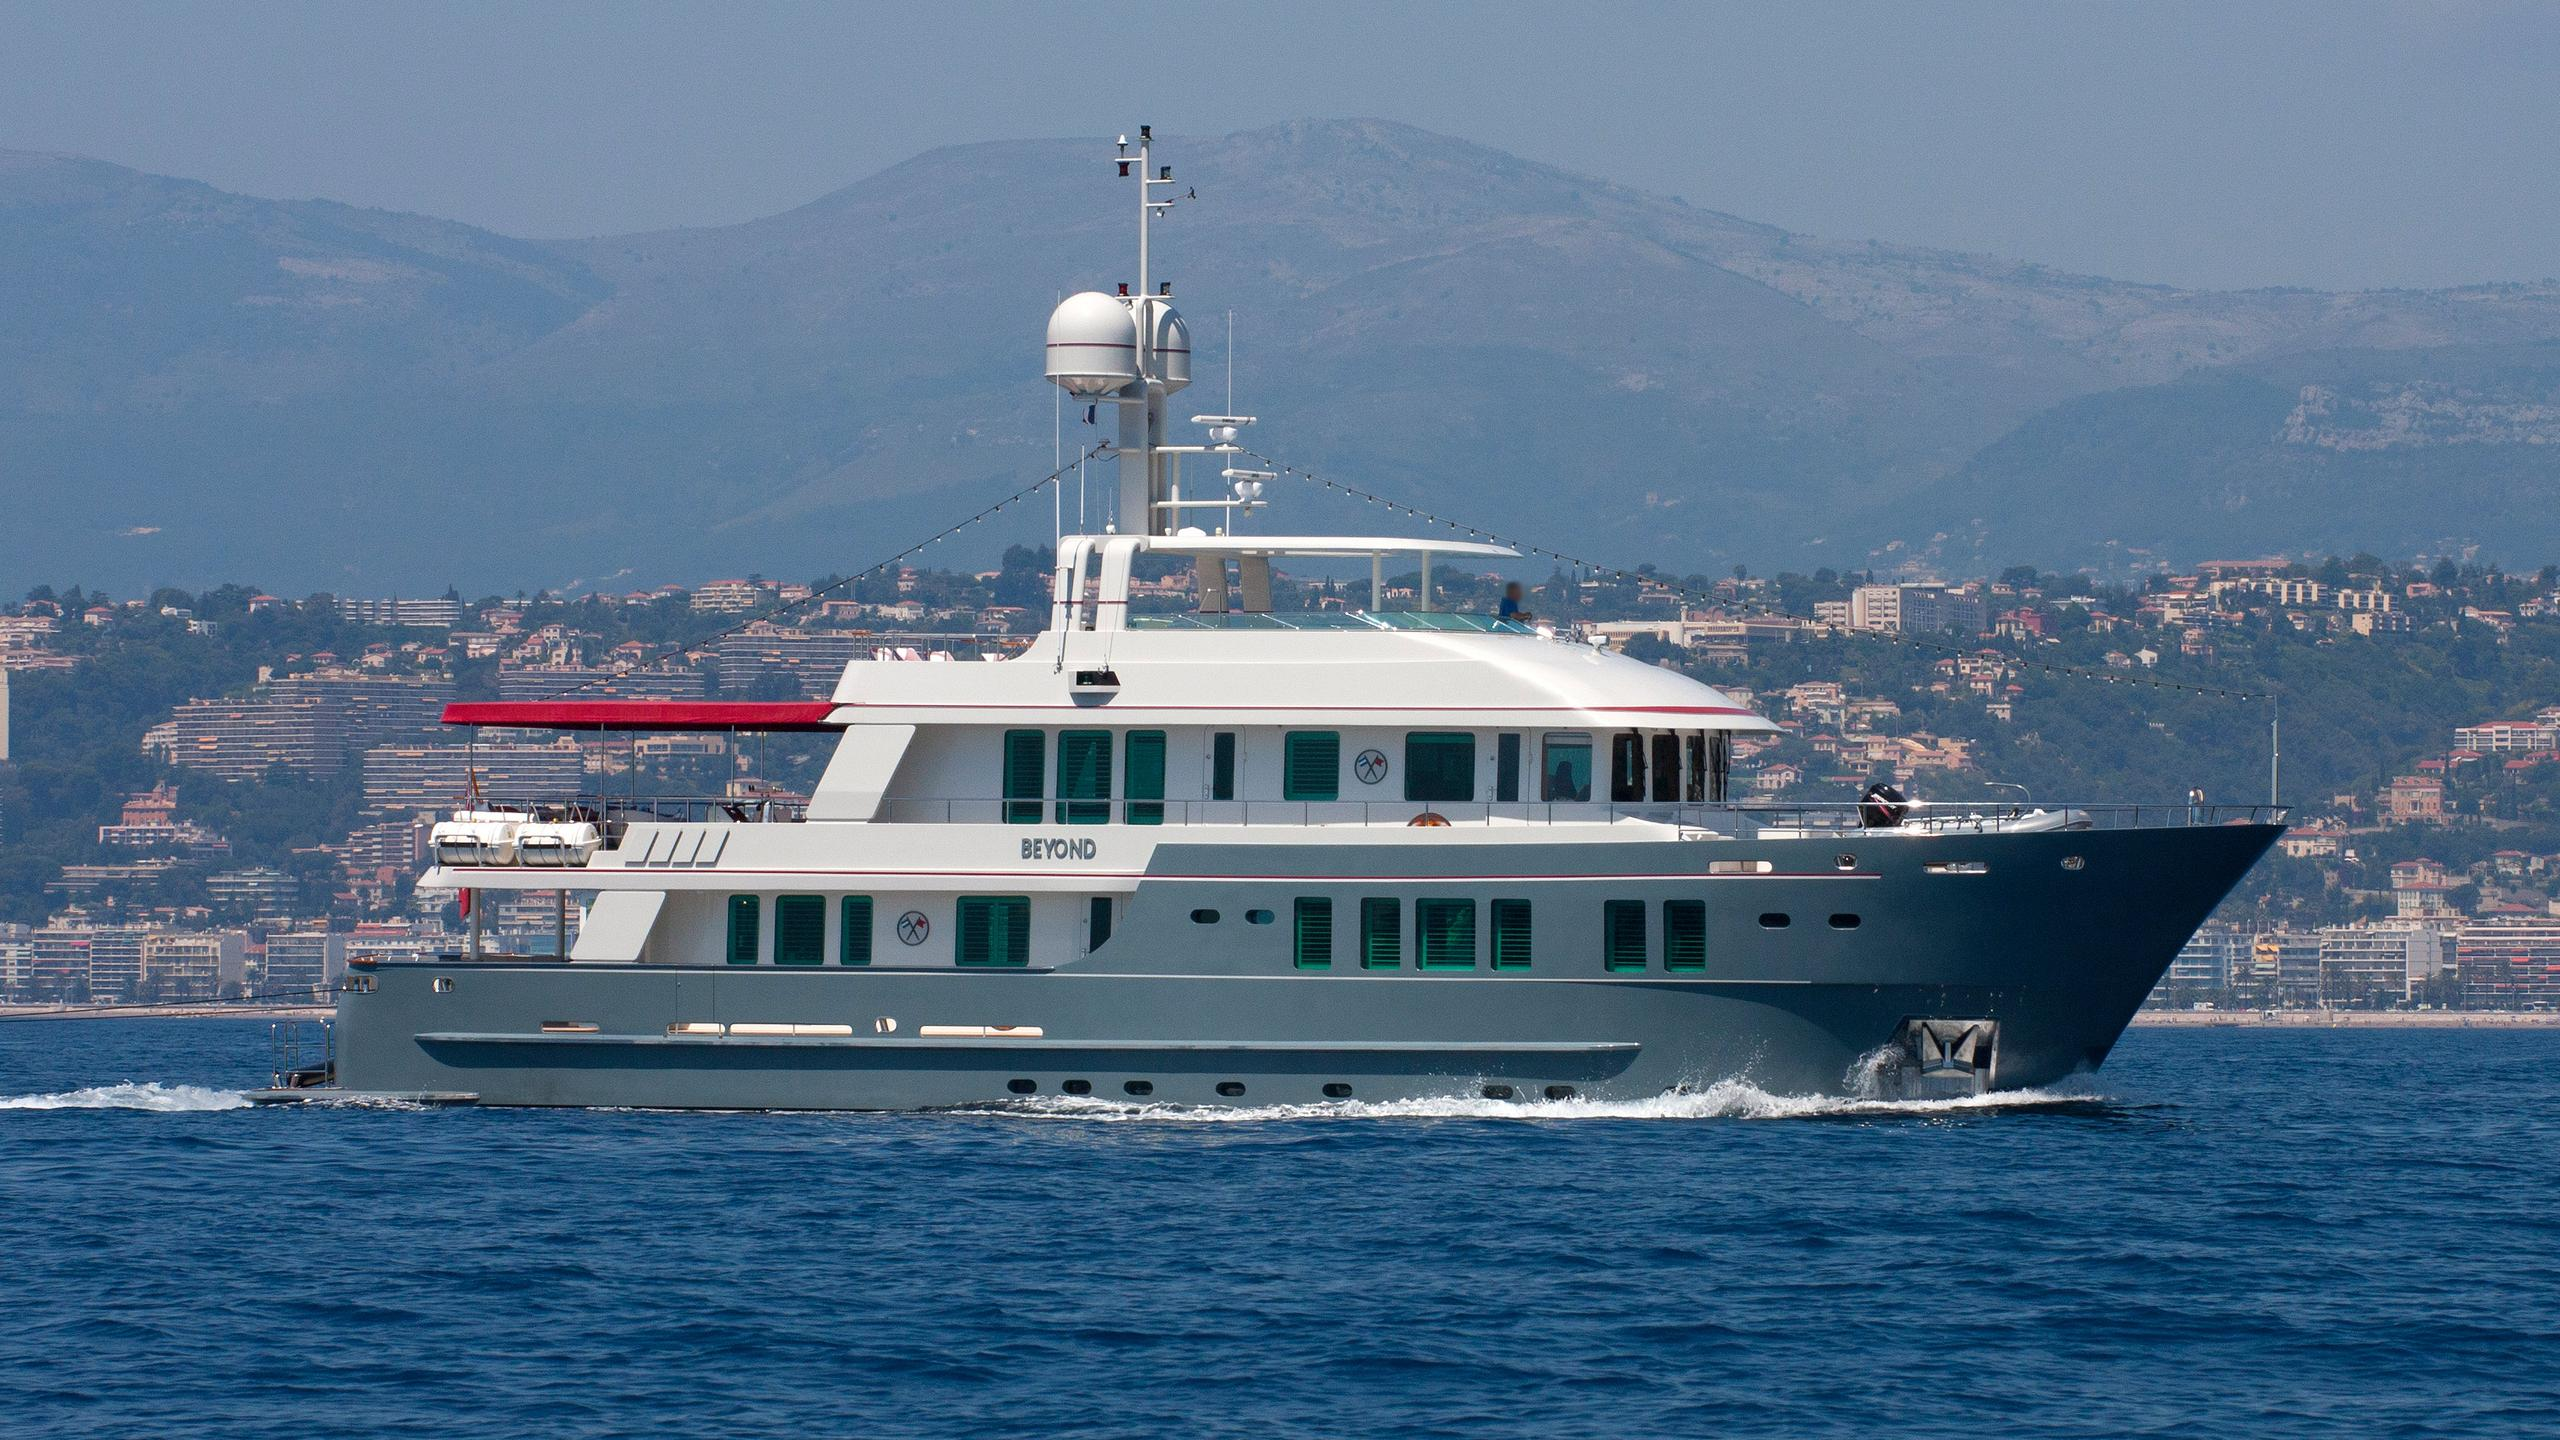 zulu-motor-expedition-yacht-inace-explorer-100-2009-35m-cruising-before-refit